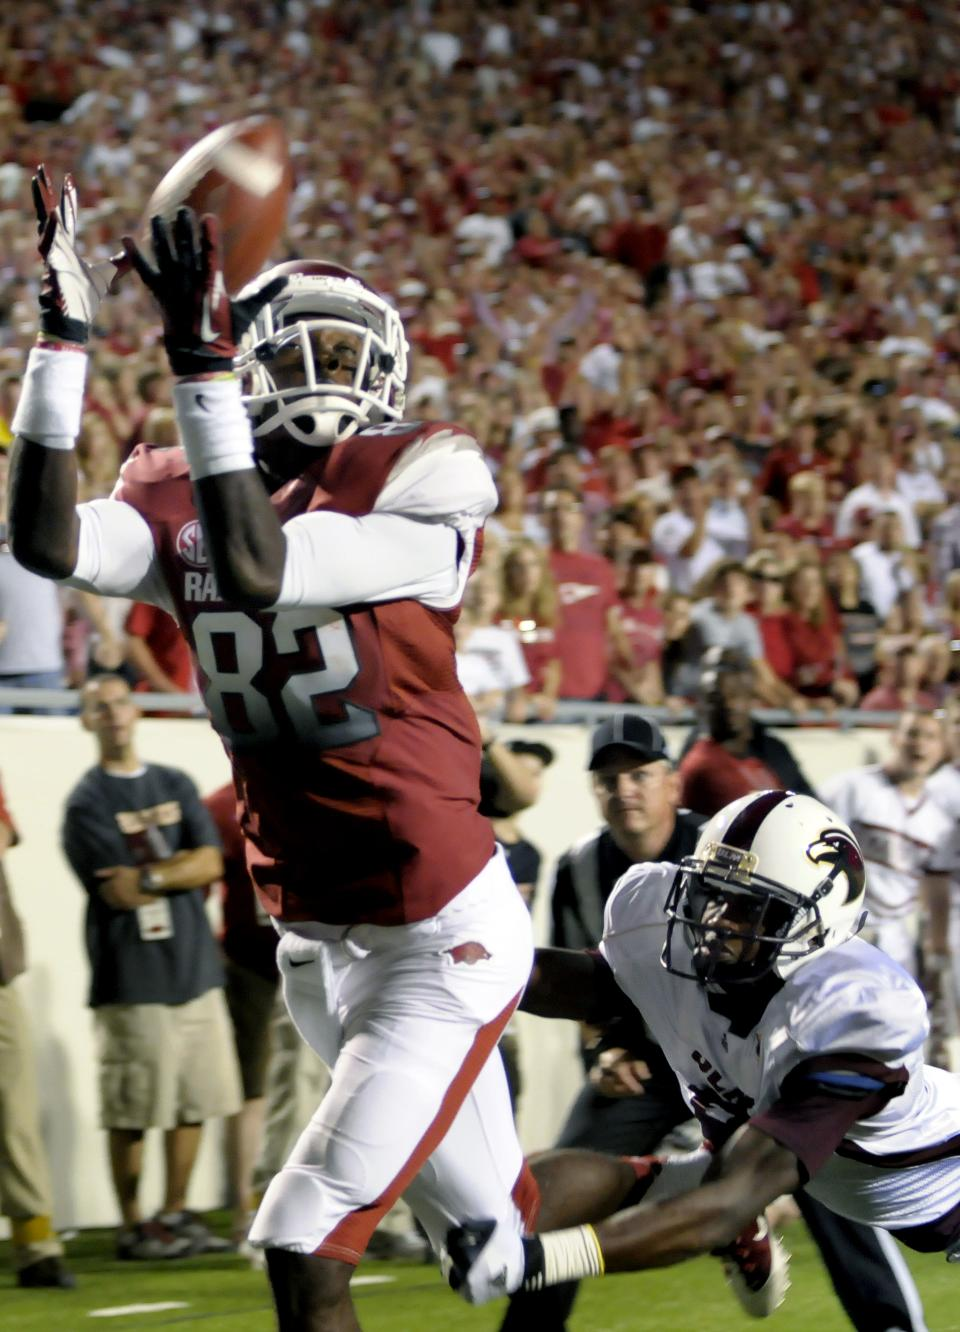 Arkansas wide receiver Mekale McKay (82) catches a 13-yard touchdown pass as he eludes Louisiana Monroe cornerback Otis Peterson, right, during the third quarter of an NCAA college football game in Little Rock, Ark., Saturday, Sept. 8, 2012. (AP Photo/David Quinn)